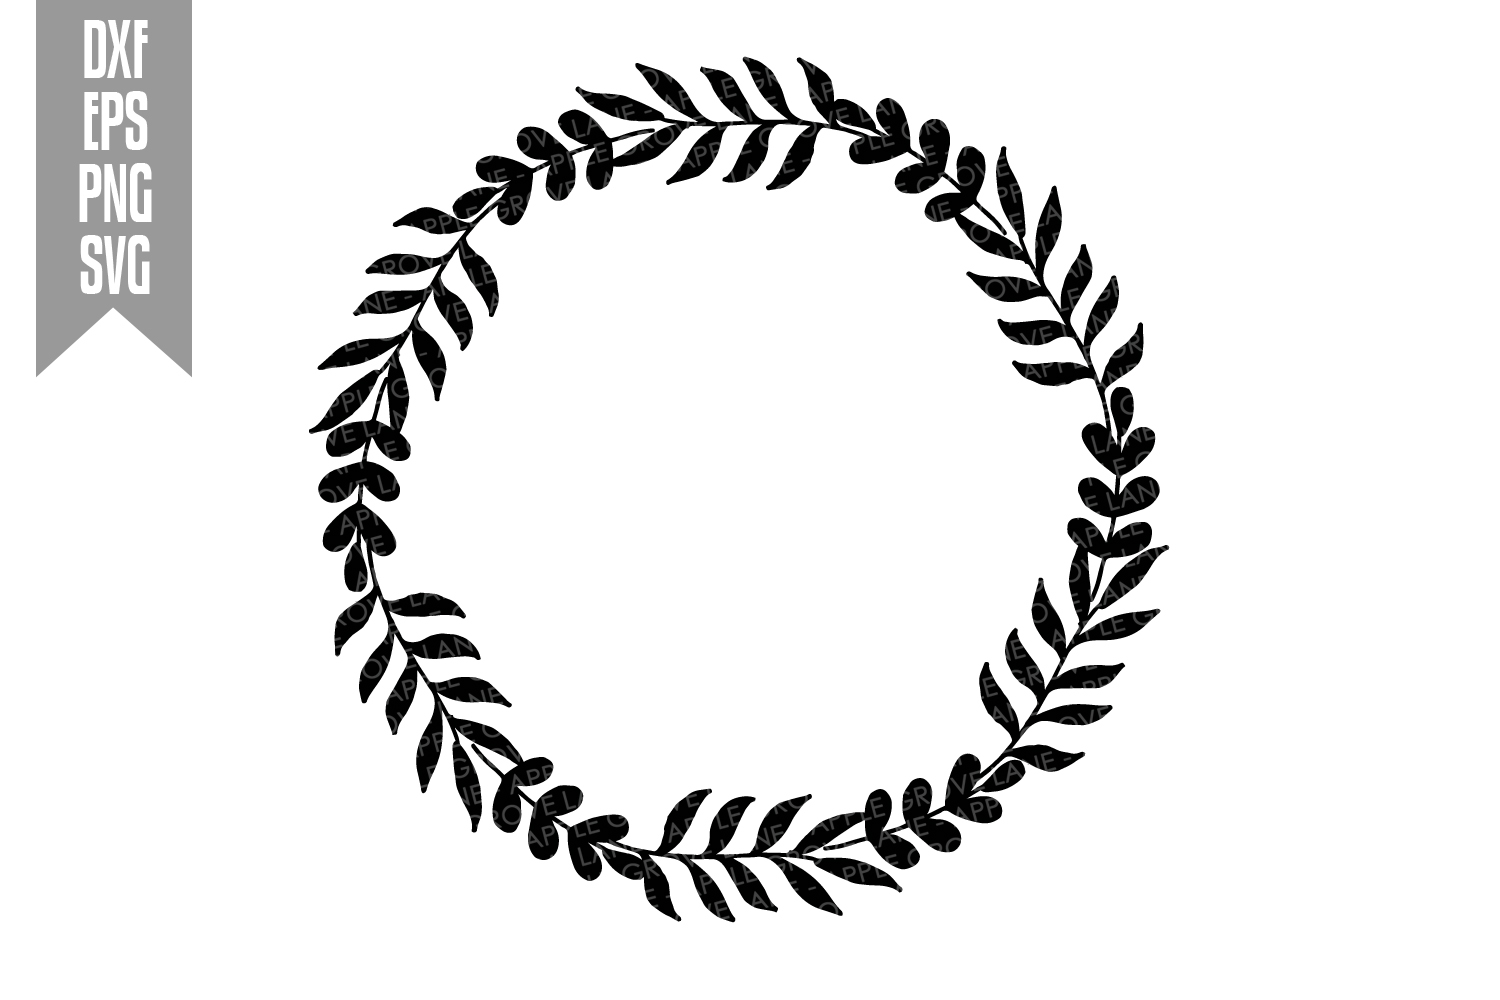 Wreath Svg Bundle - 6 designs included - Svg Cut Files example image 12